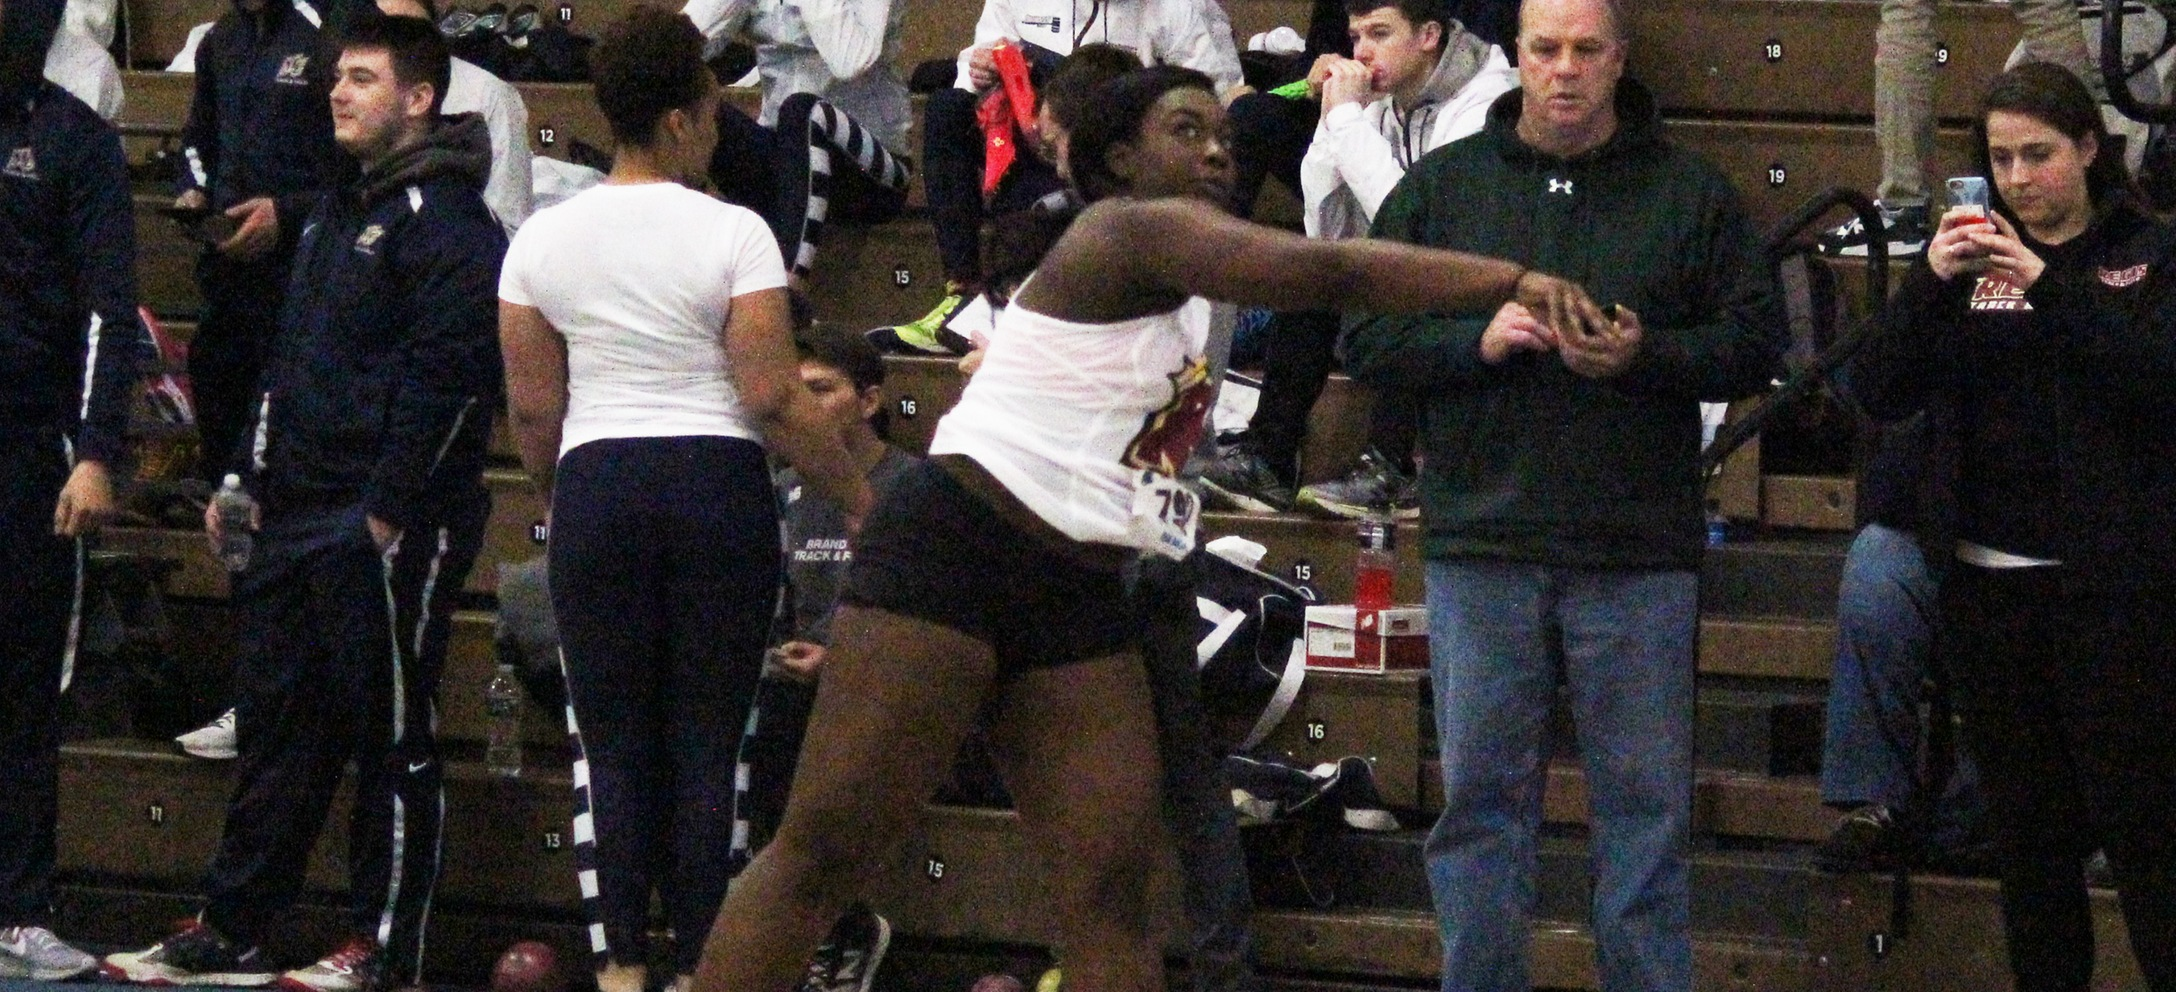 Akanegbu Sets Program Record At UMass Boston Indoor Open